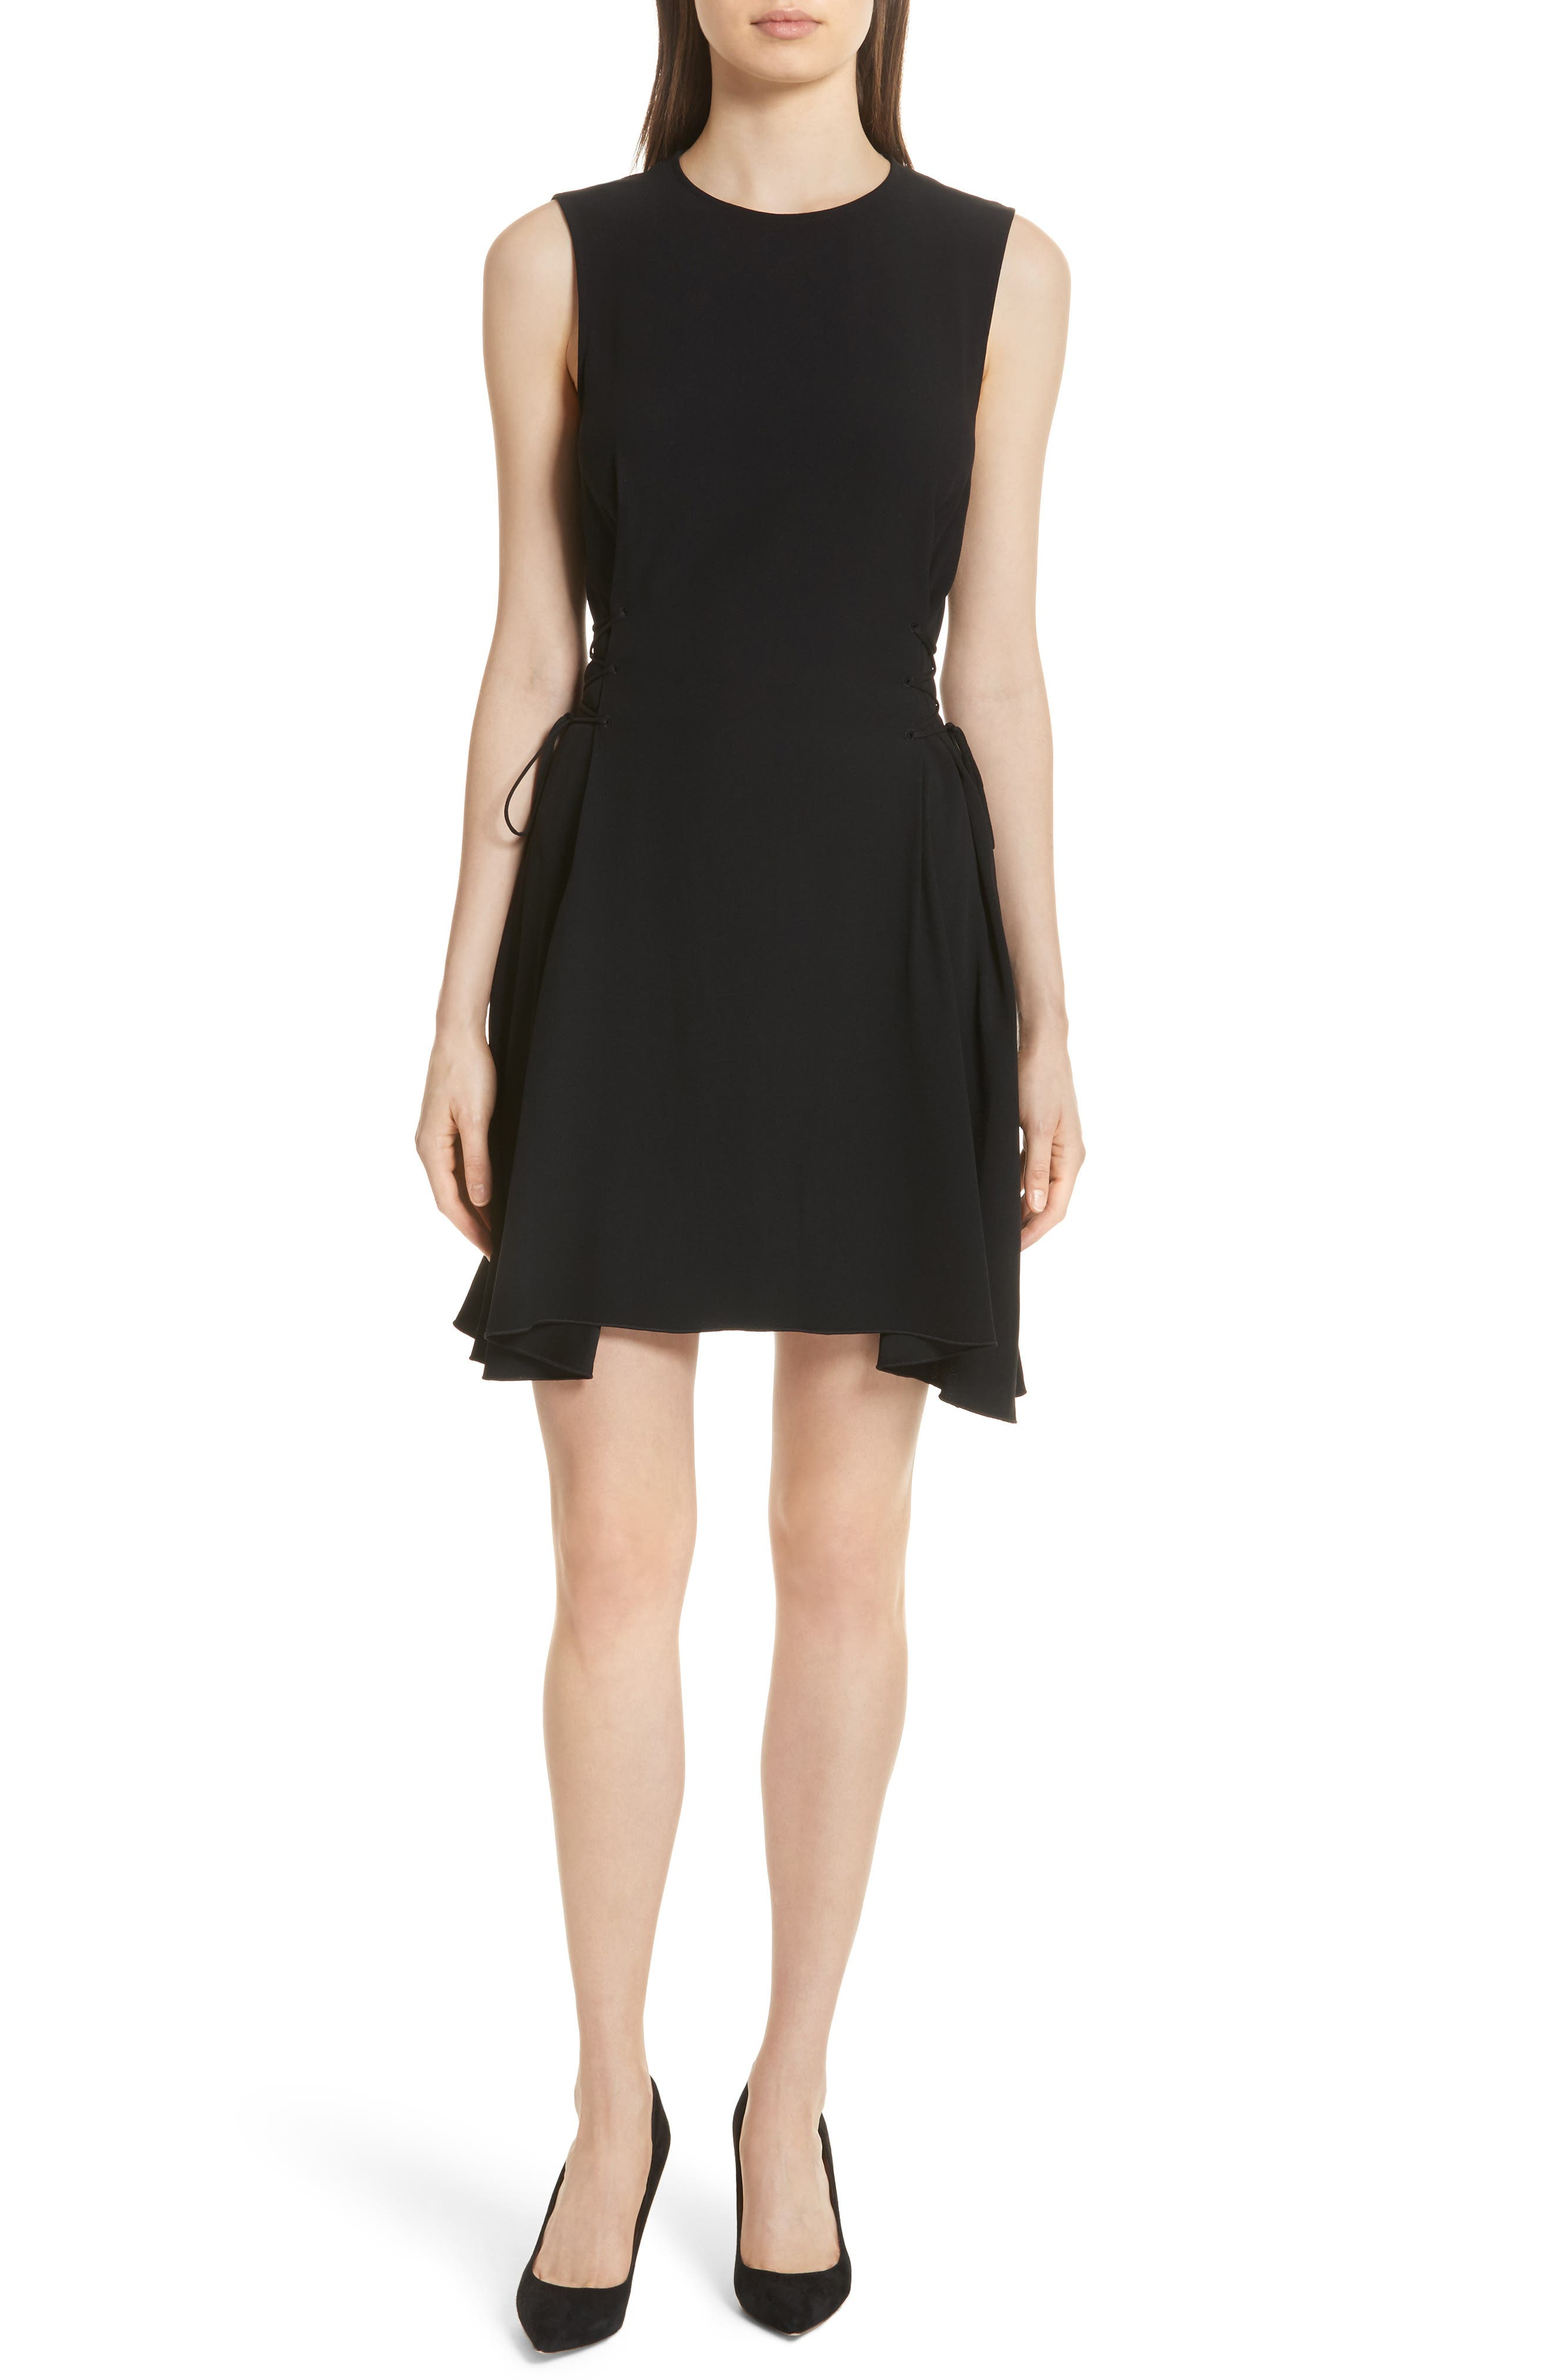 Where to Get Little Black Dress